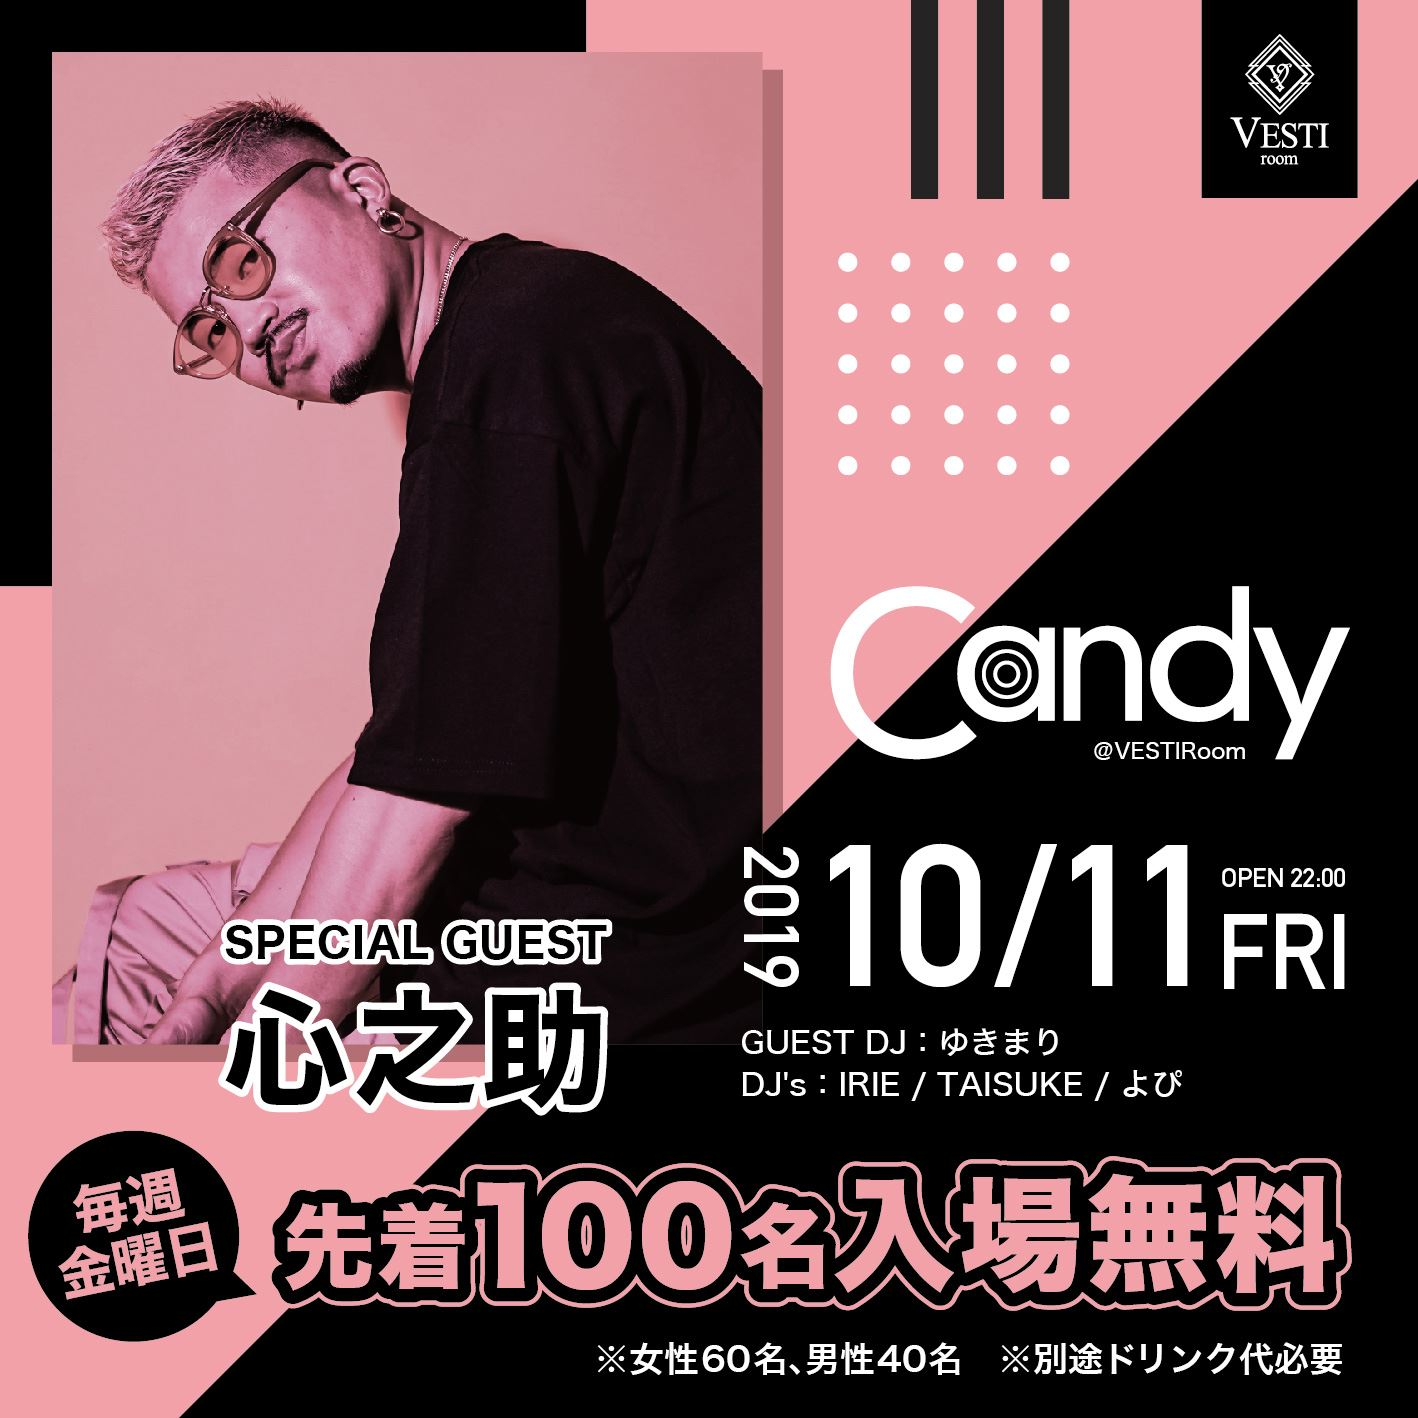 CANDY ~SPECIAL GUEST 心之助 ~